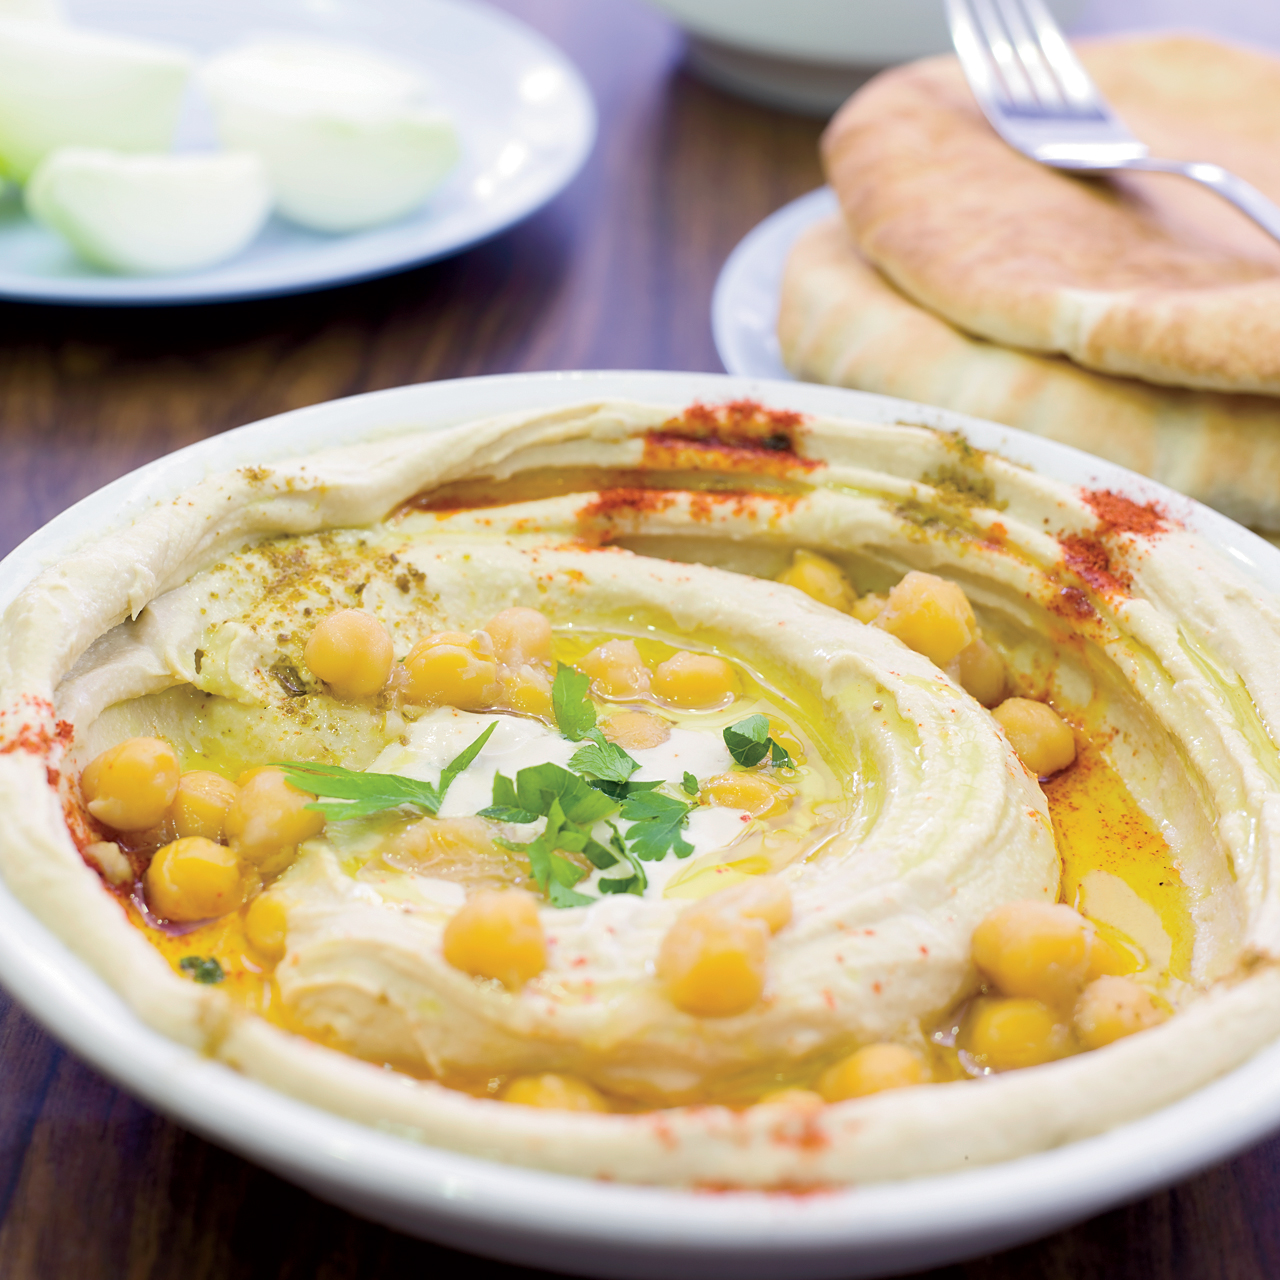 Michael Solomonov's Israeli Hummus with Paprika and Whole Chickpeas.